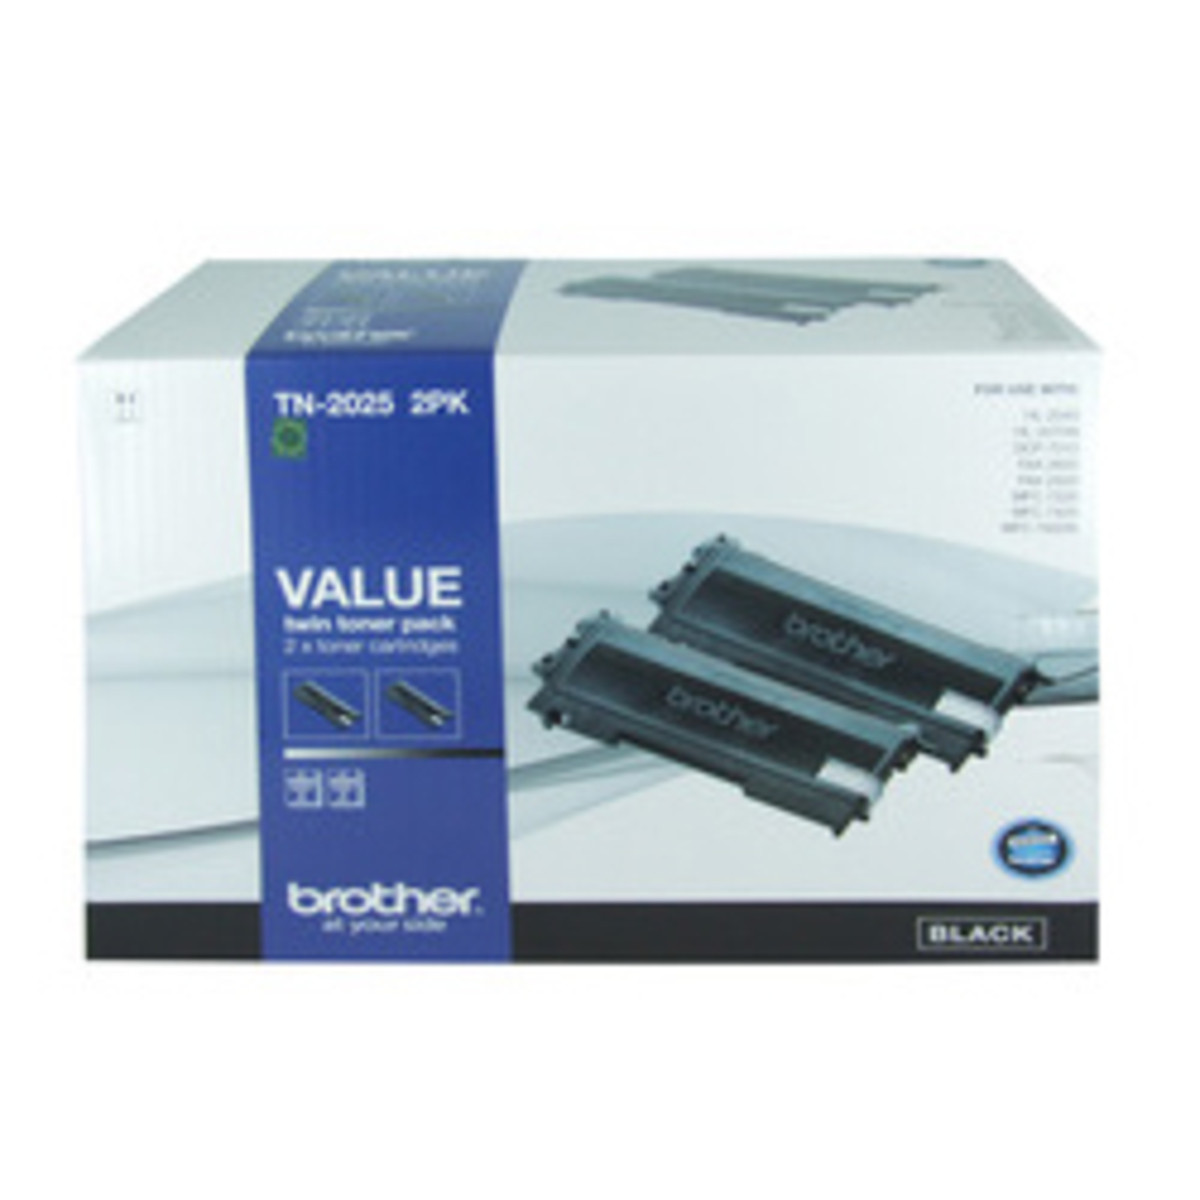 Brother TN-2025 Black Toner Cartridges - Twin Pack